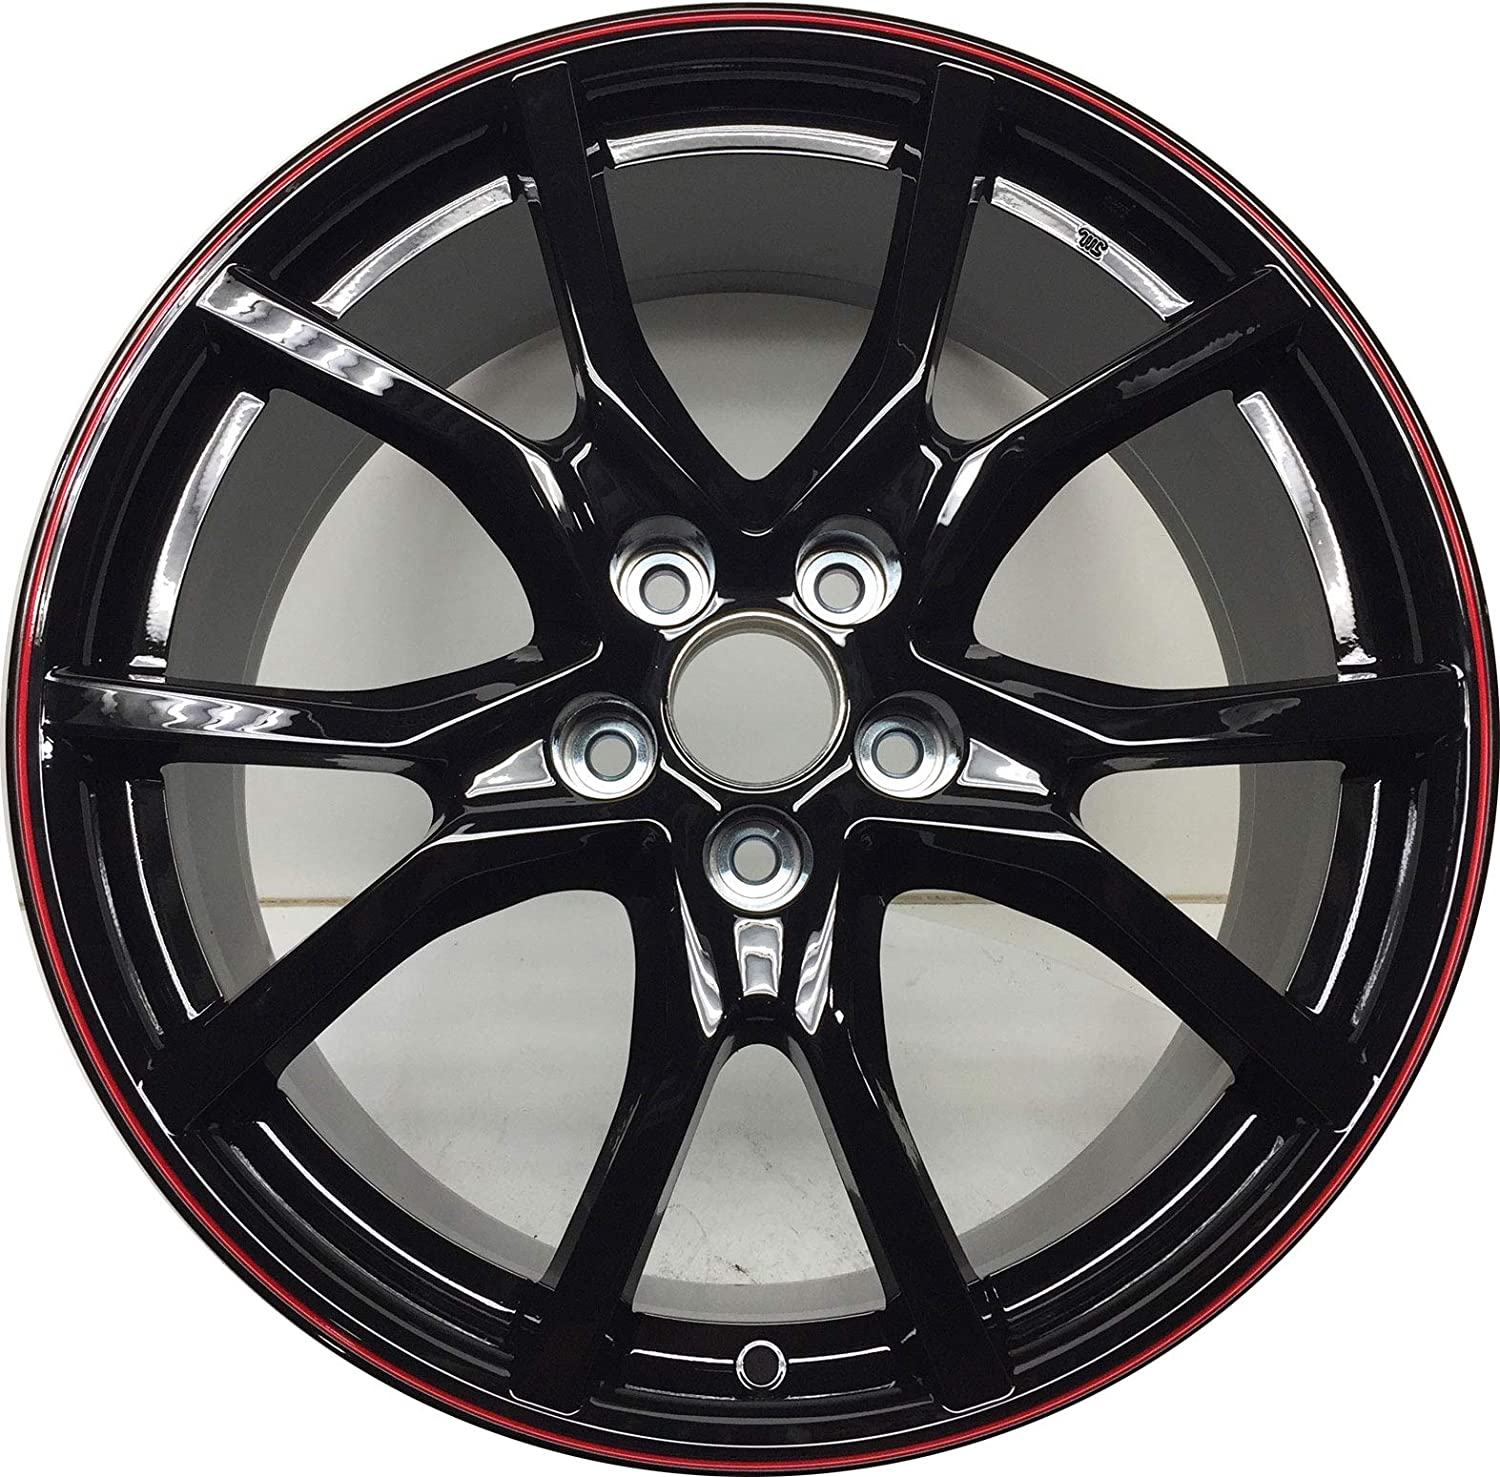 New 20 20x8.5 Replacement Alloy Wheel Rim for 2017-2019 Honda Civic Type R